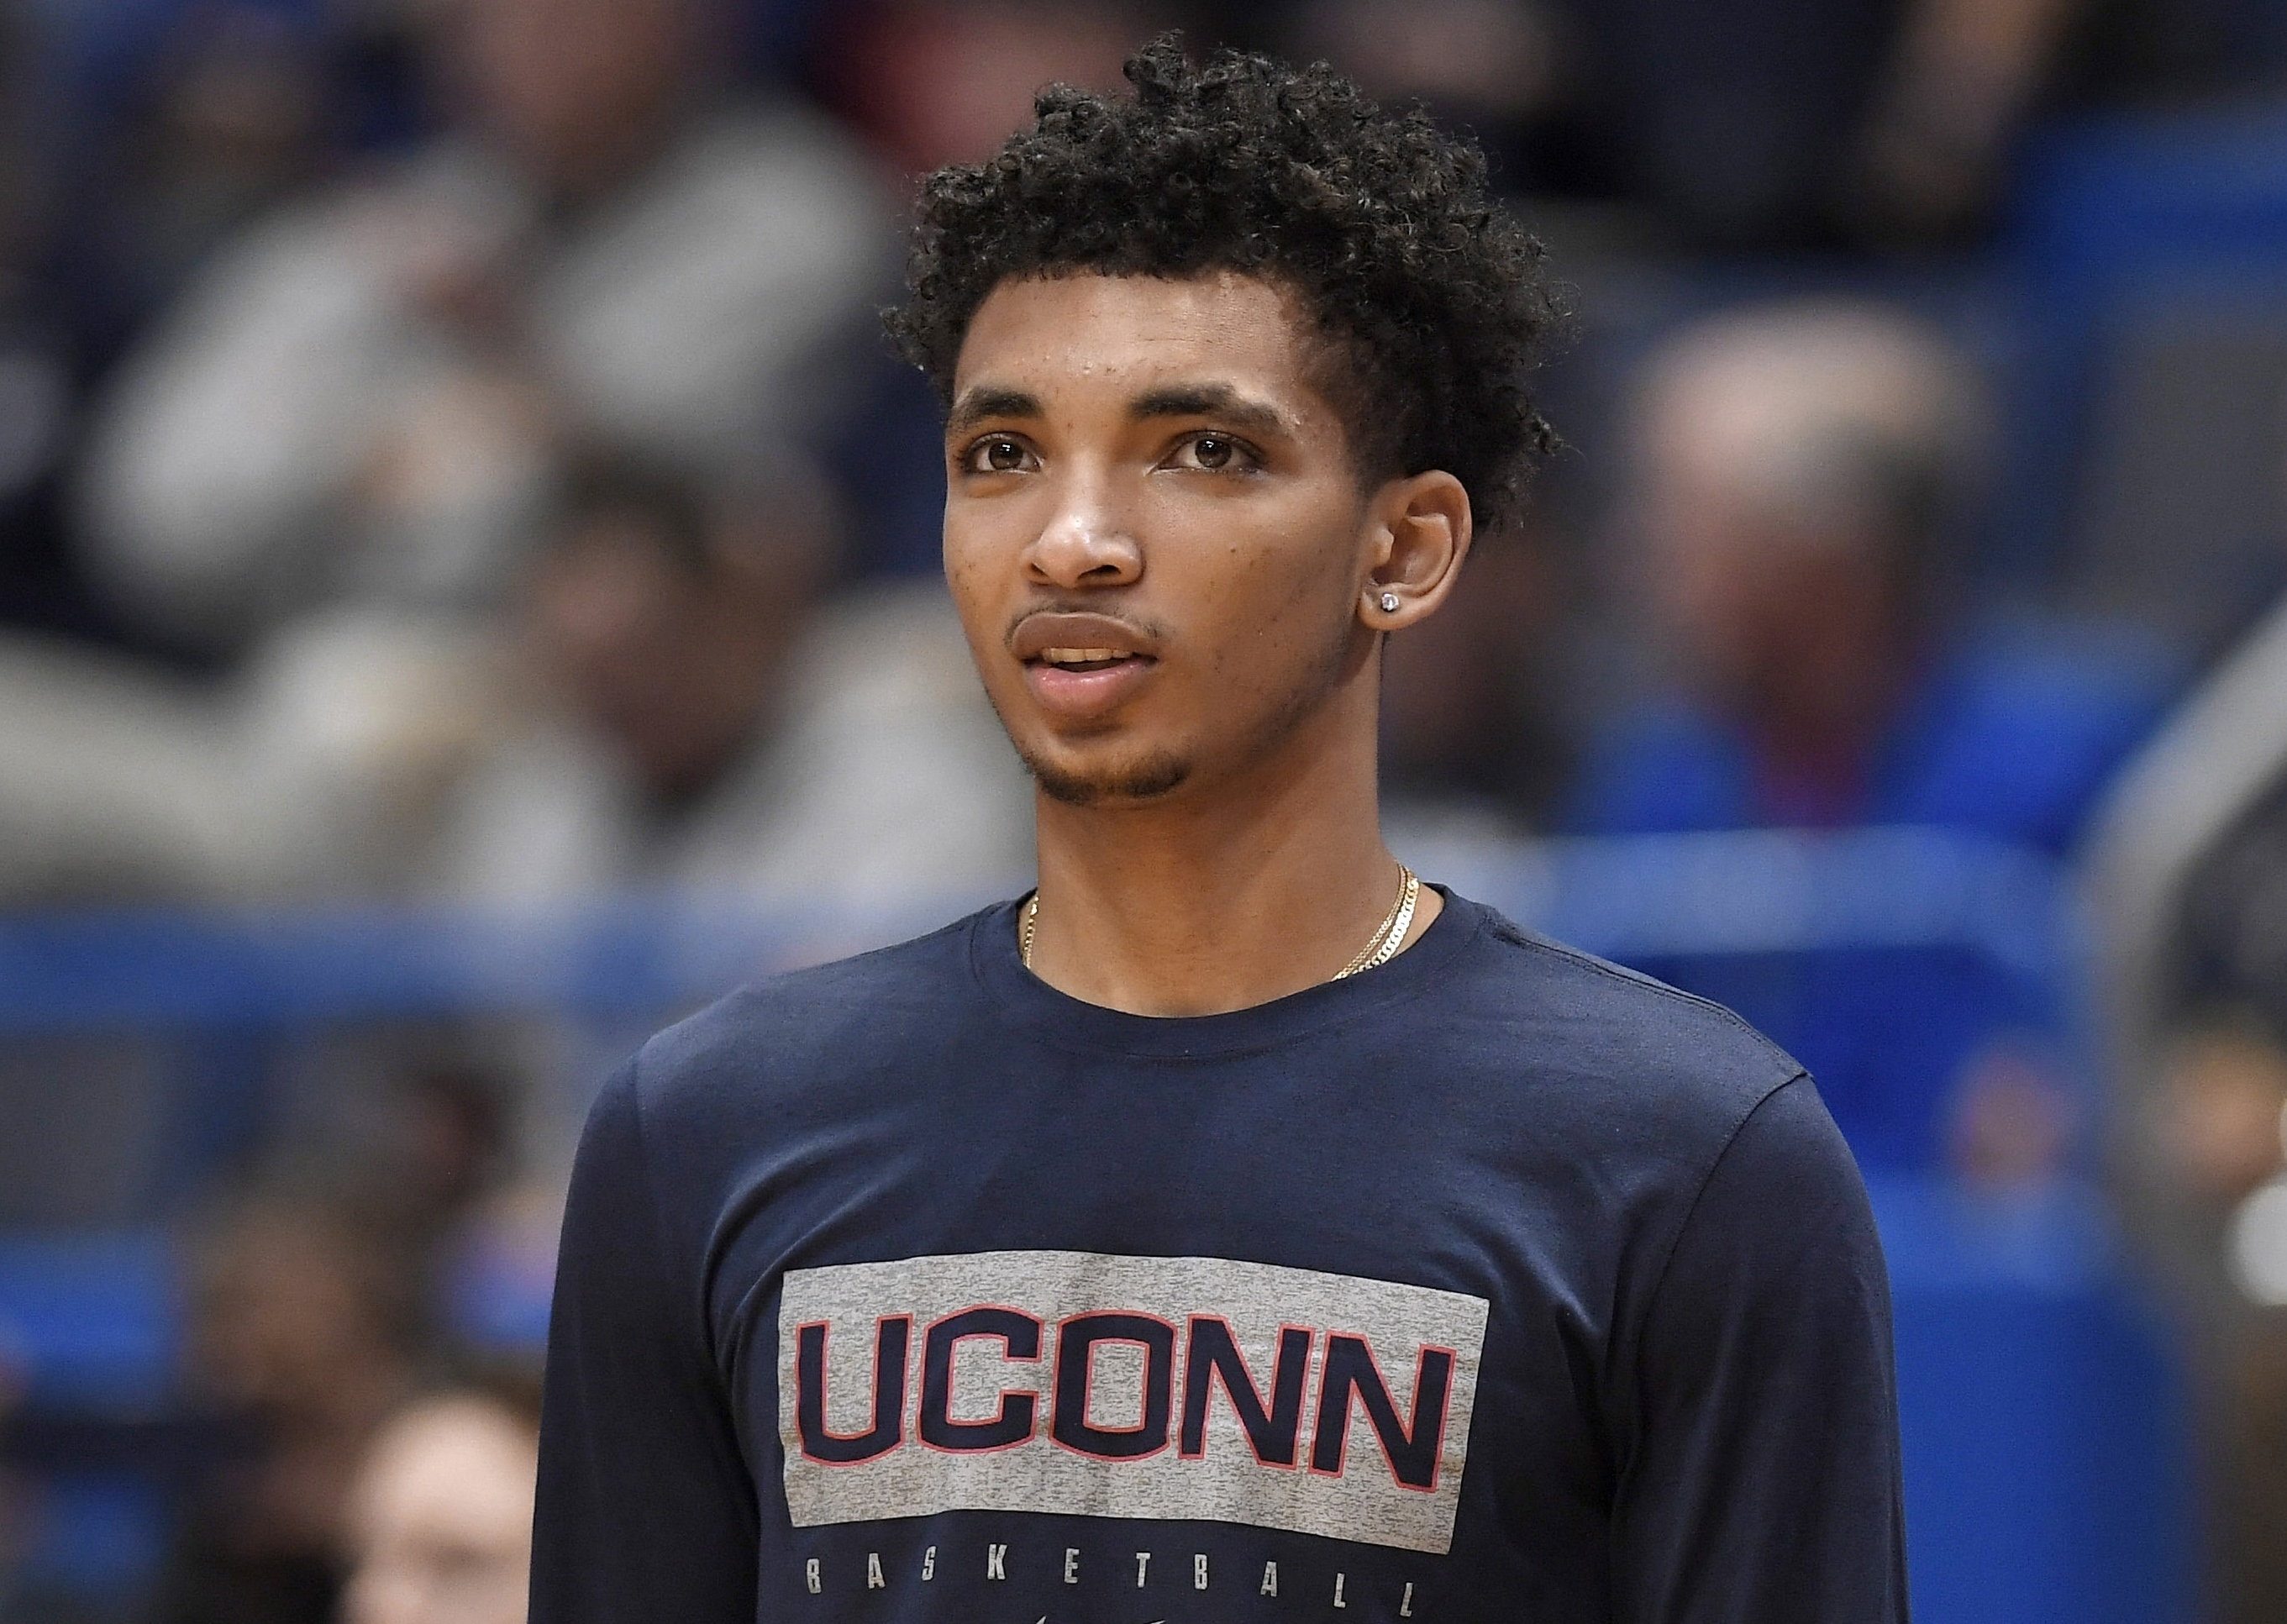 UConn guard charged with evading police is granted probation